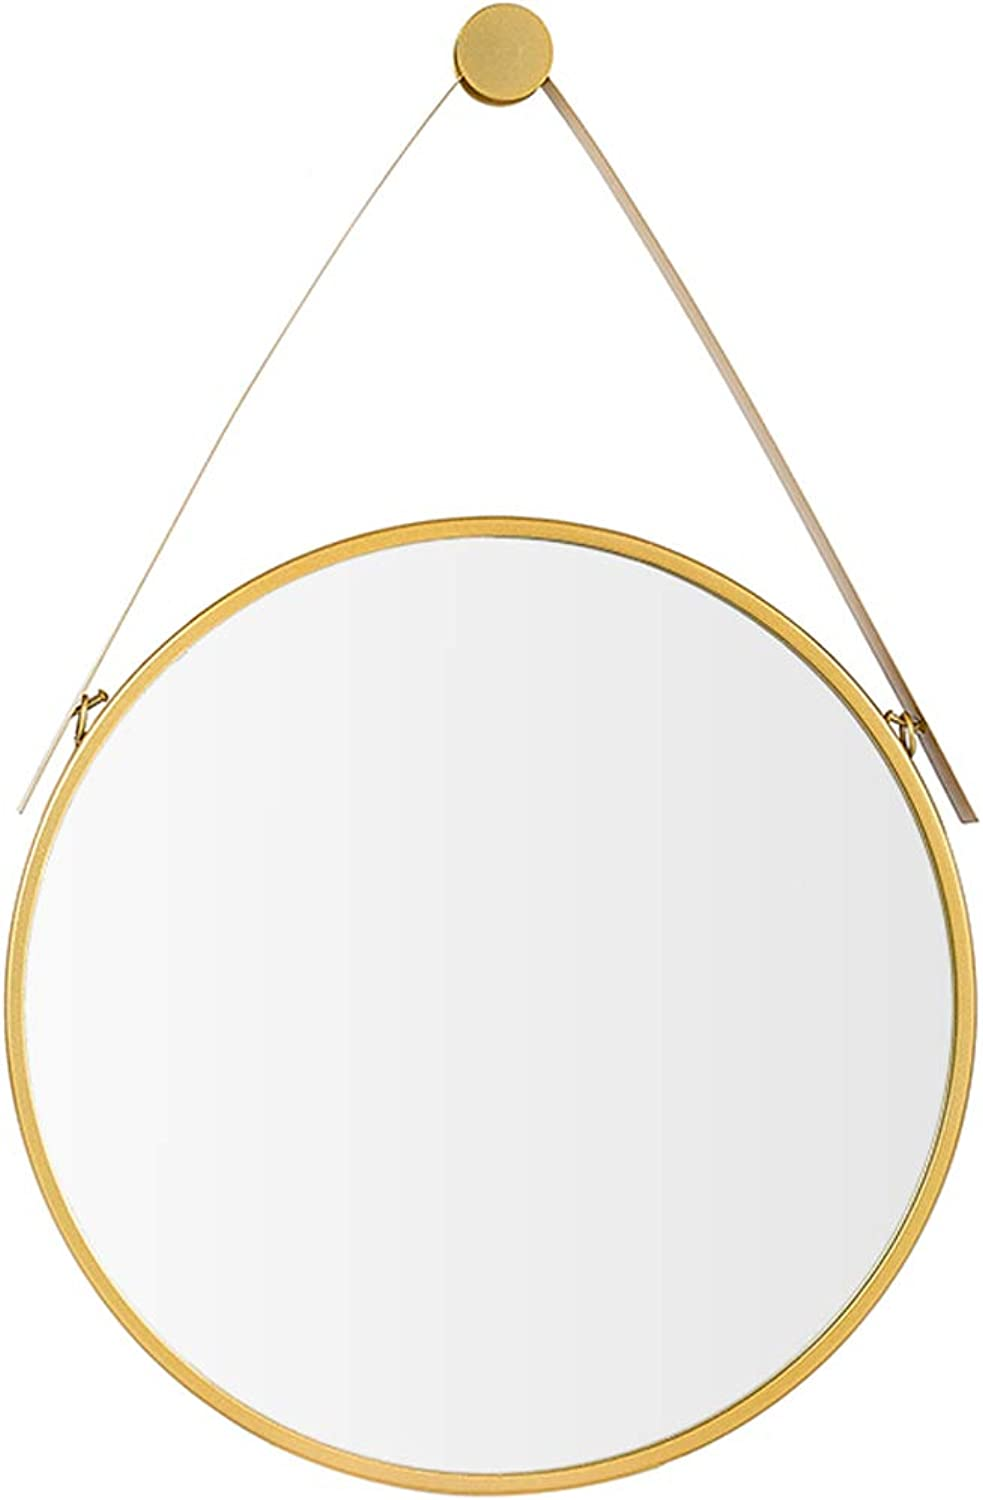 Vanity Mirror Bathroom Metal Frame Wall-Mounted Round Makeup Hanging Mirrors Decorative Shower Shave Mirror for Entrance Hall Living Room Bedroom 30CM-80CM(12Inch-32Inch)